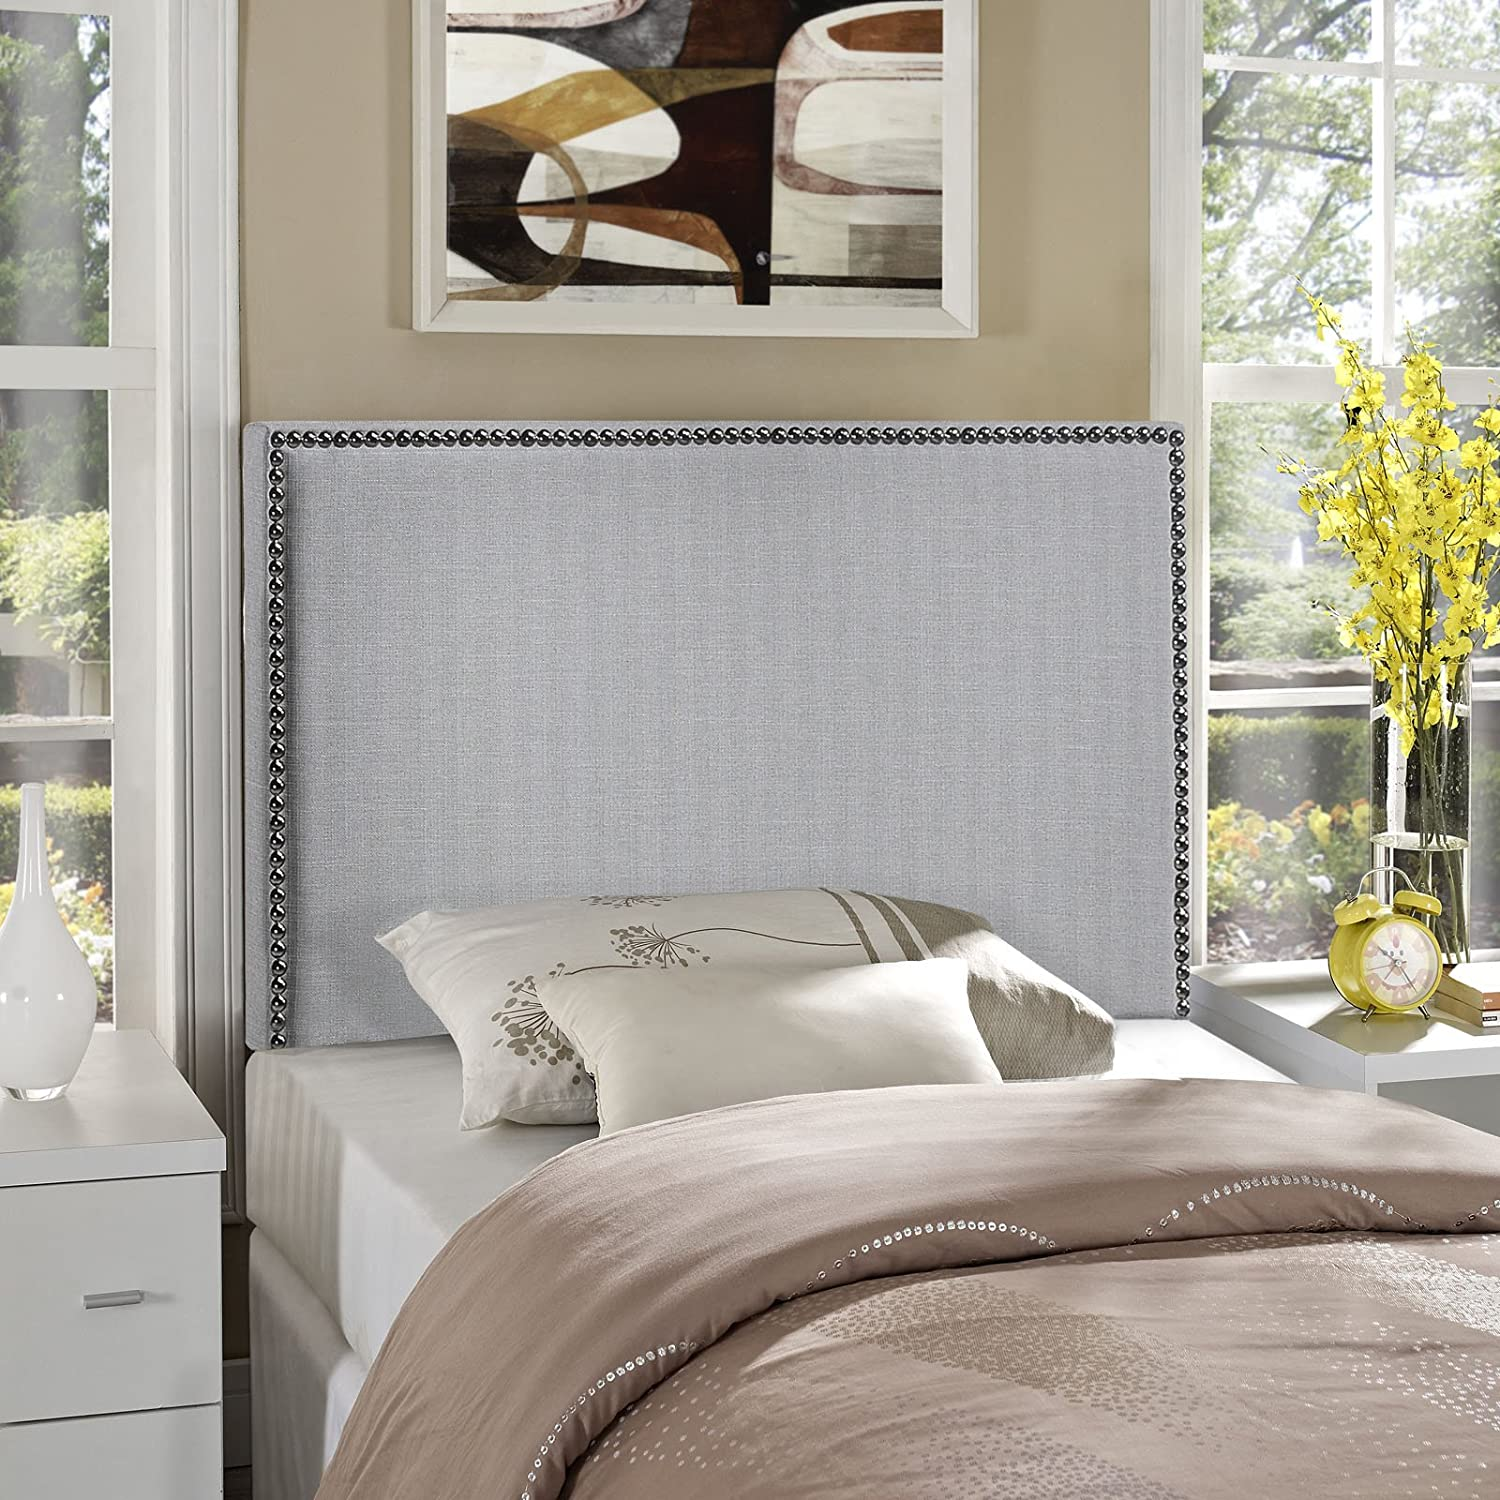 headboards headboard metal beds bed twin upholstered walmart modern size macys diy for also bedding mahogany